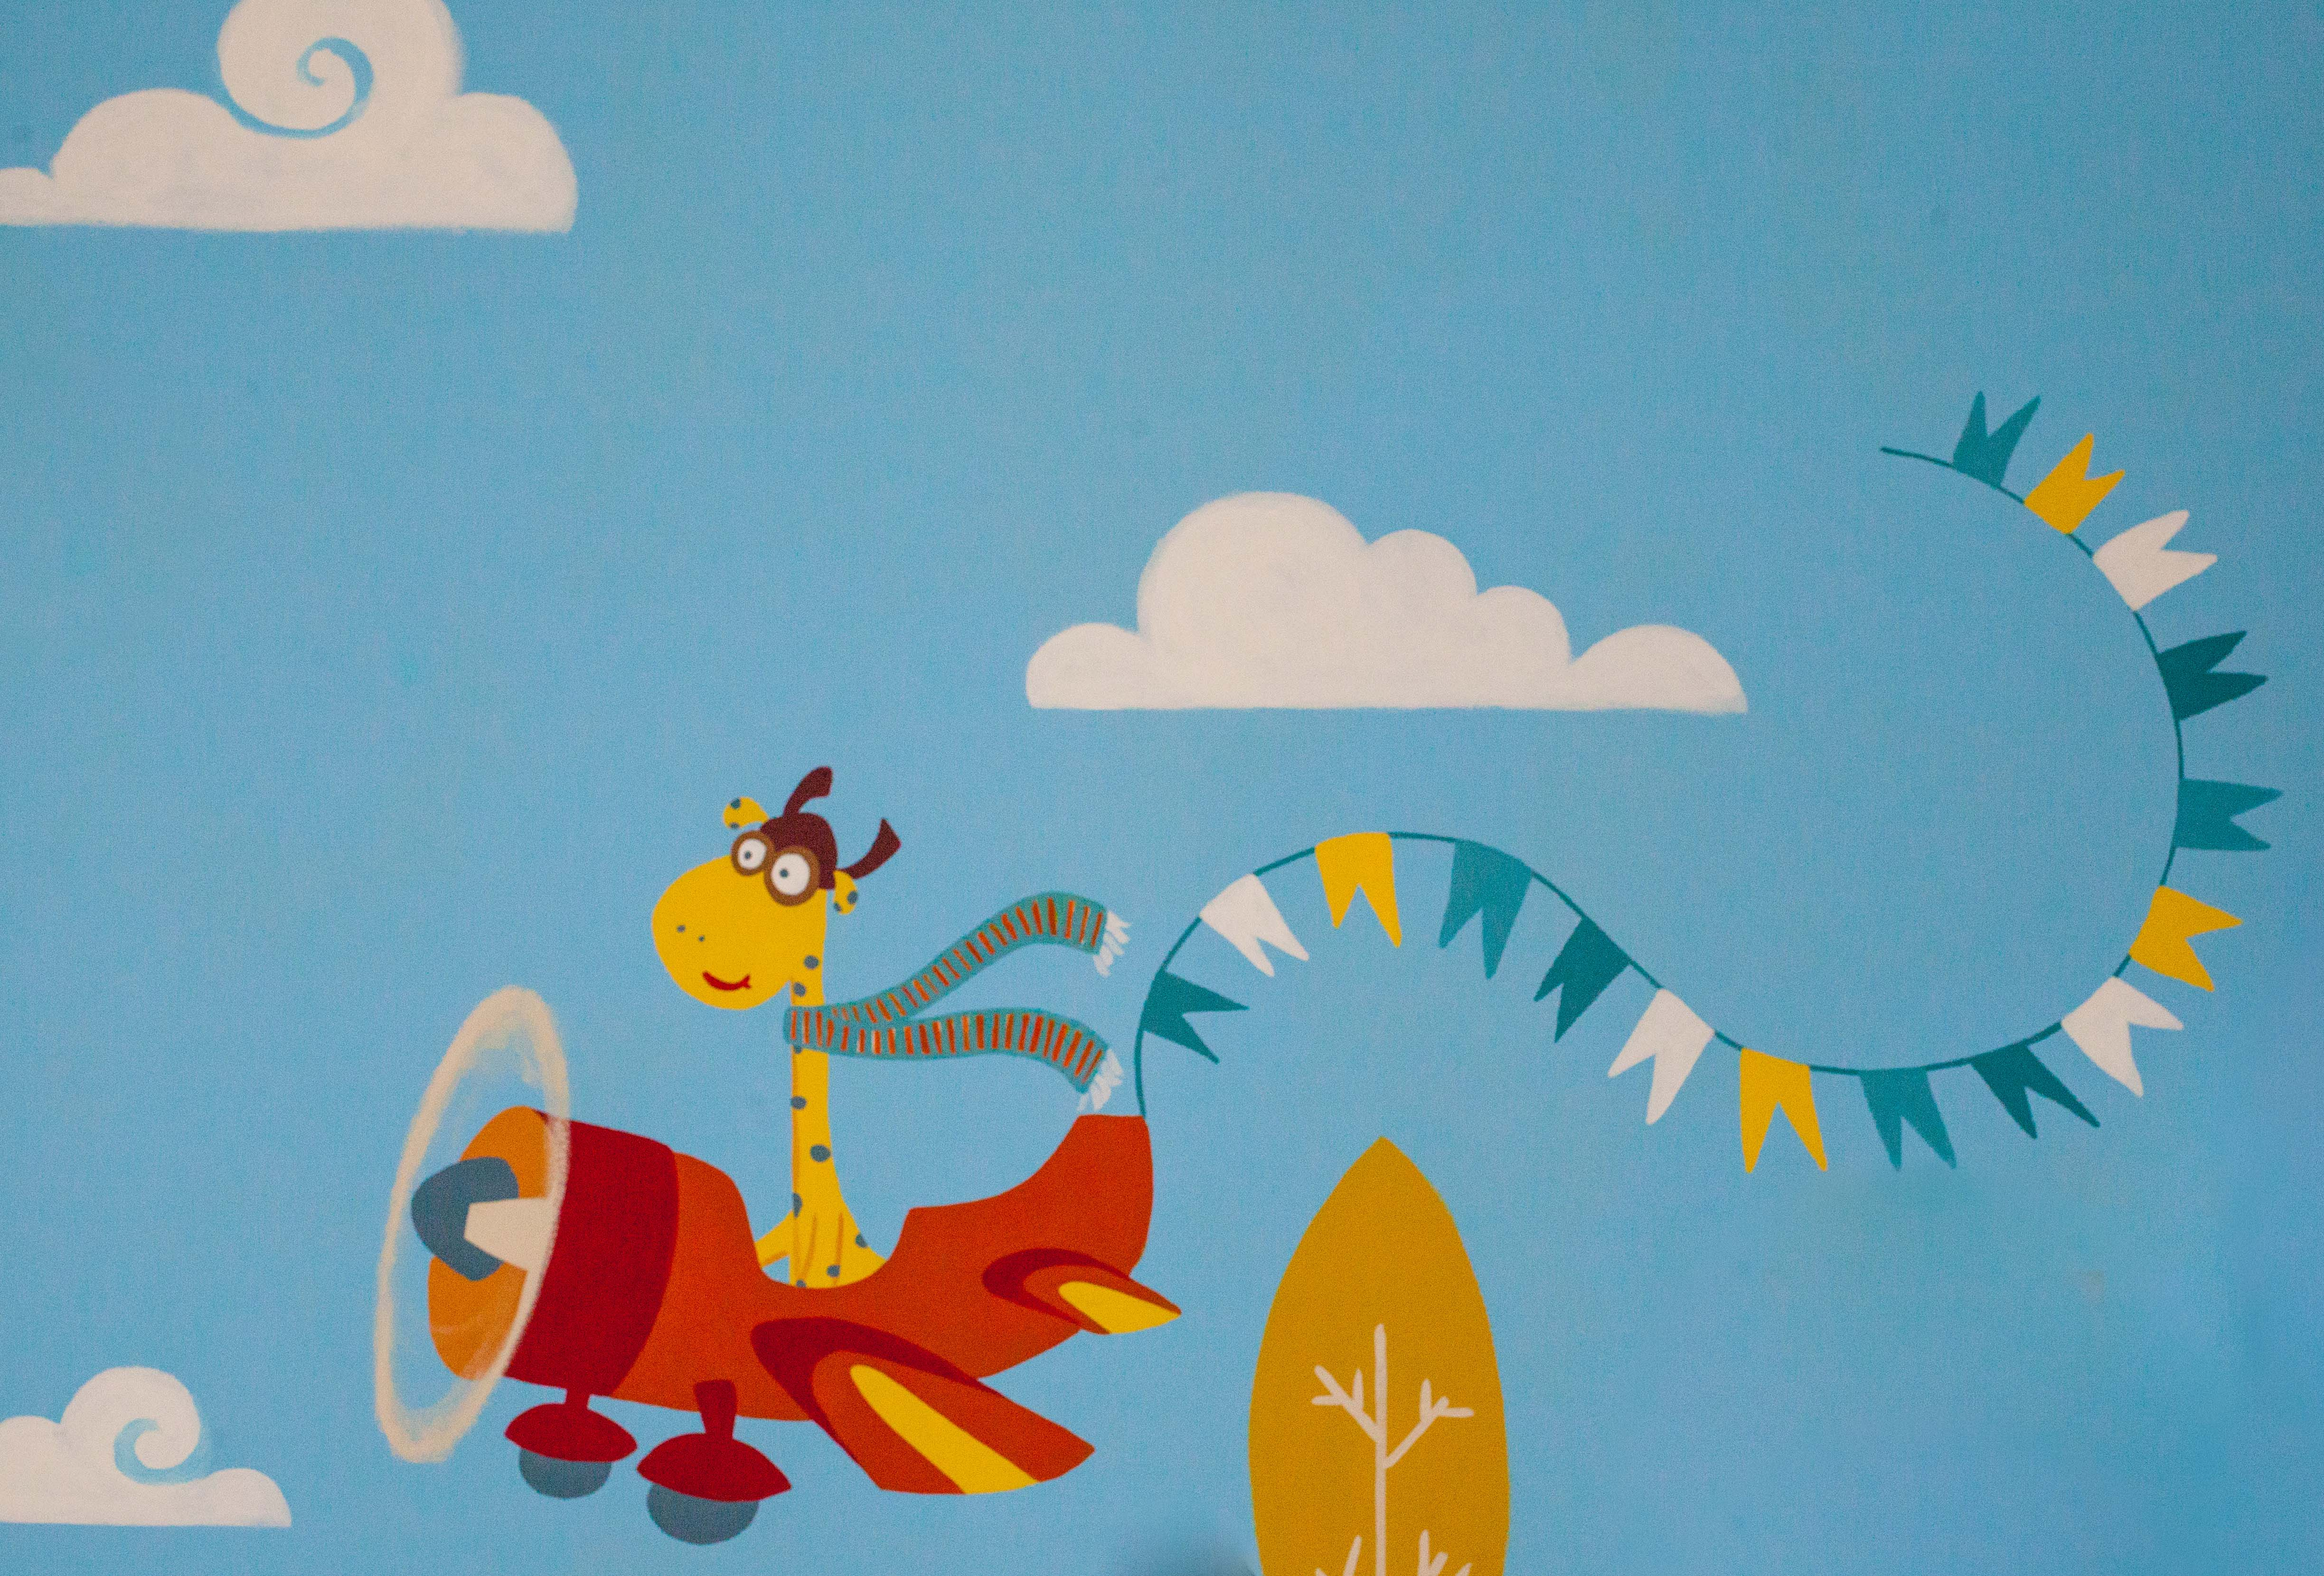 Mural in childrens hospital